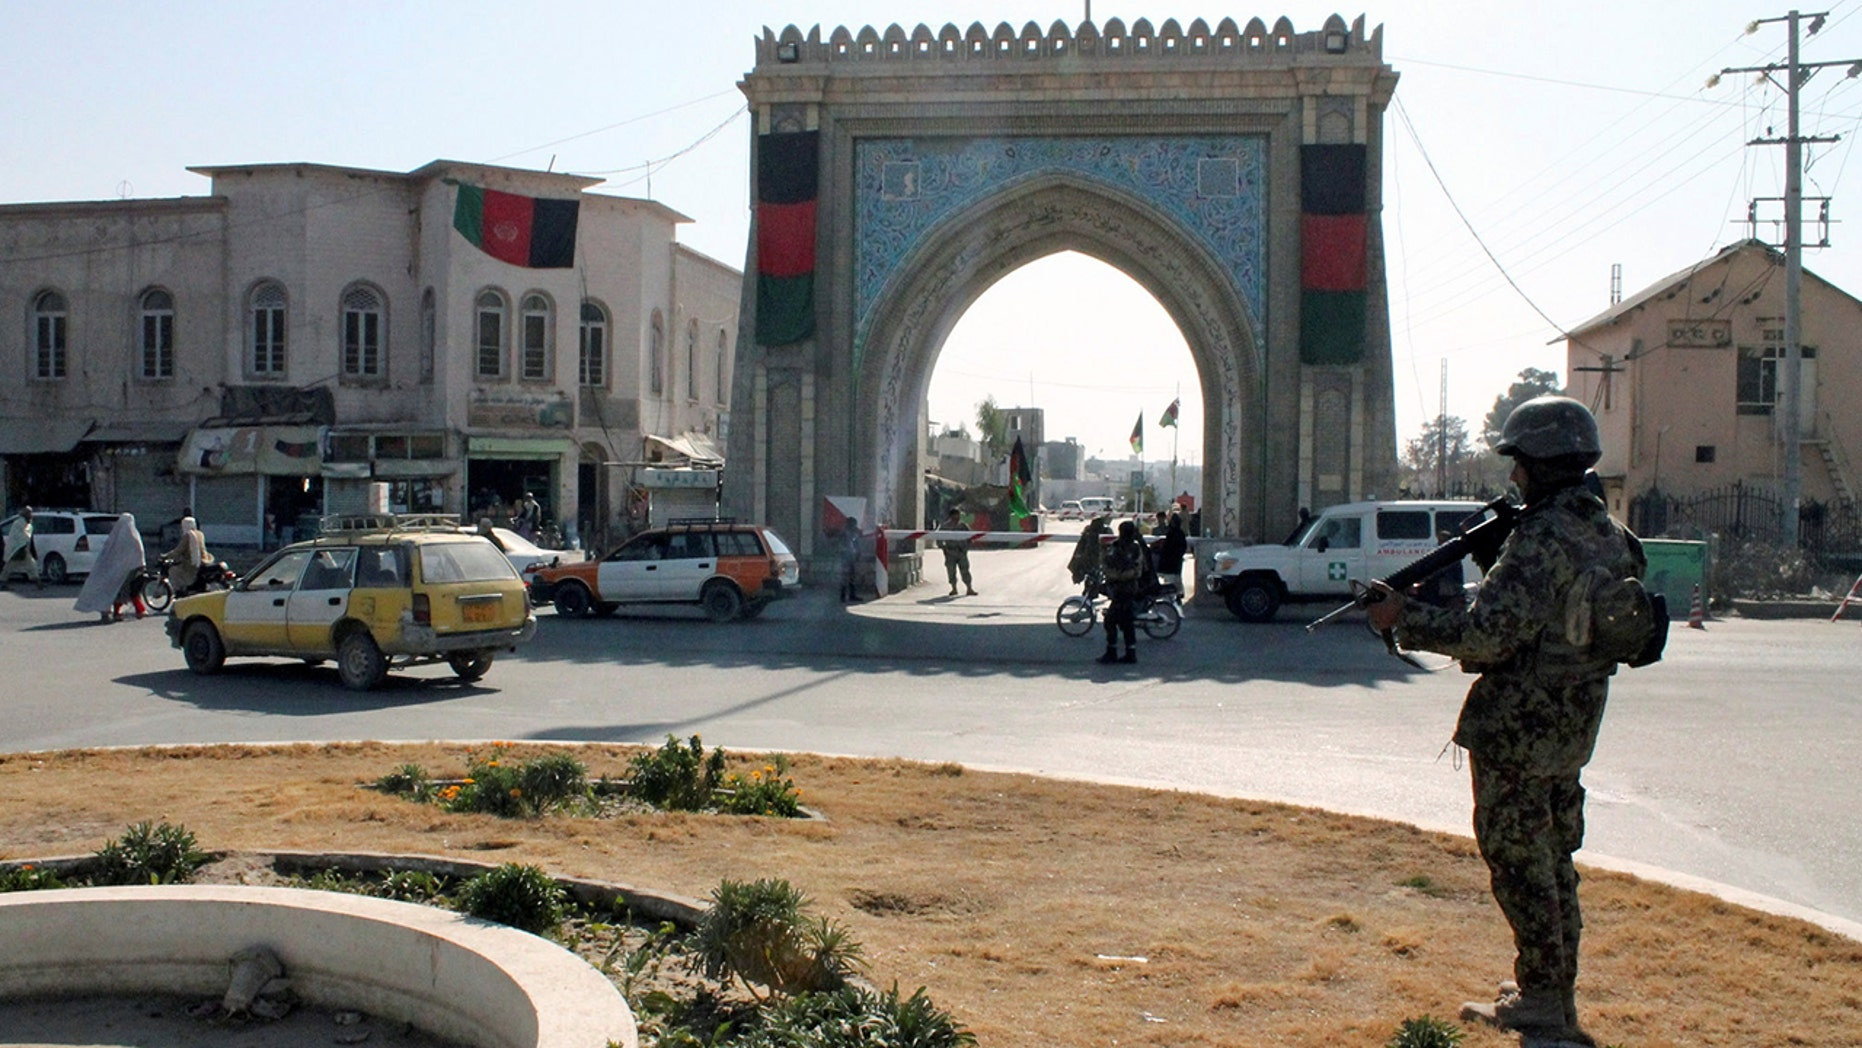 Two Americans were wounded in a shooting outside the governor's mansion in the southern Afghanistan province of Kandahar.